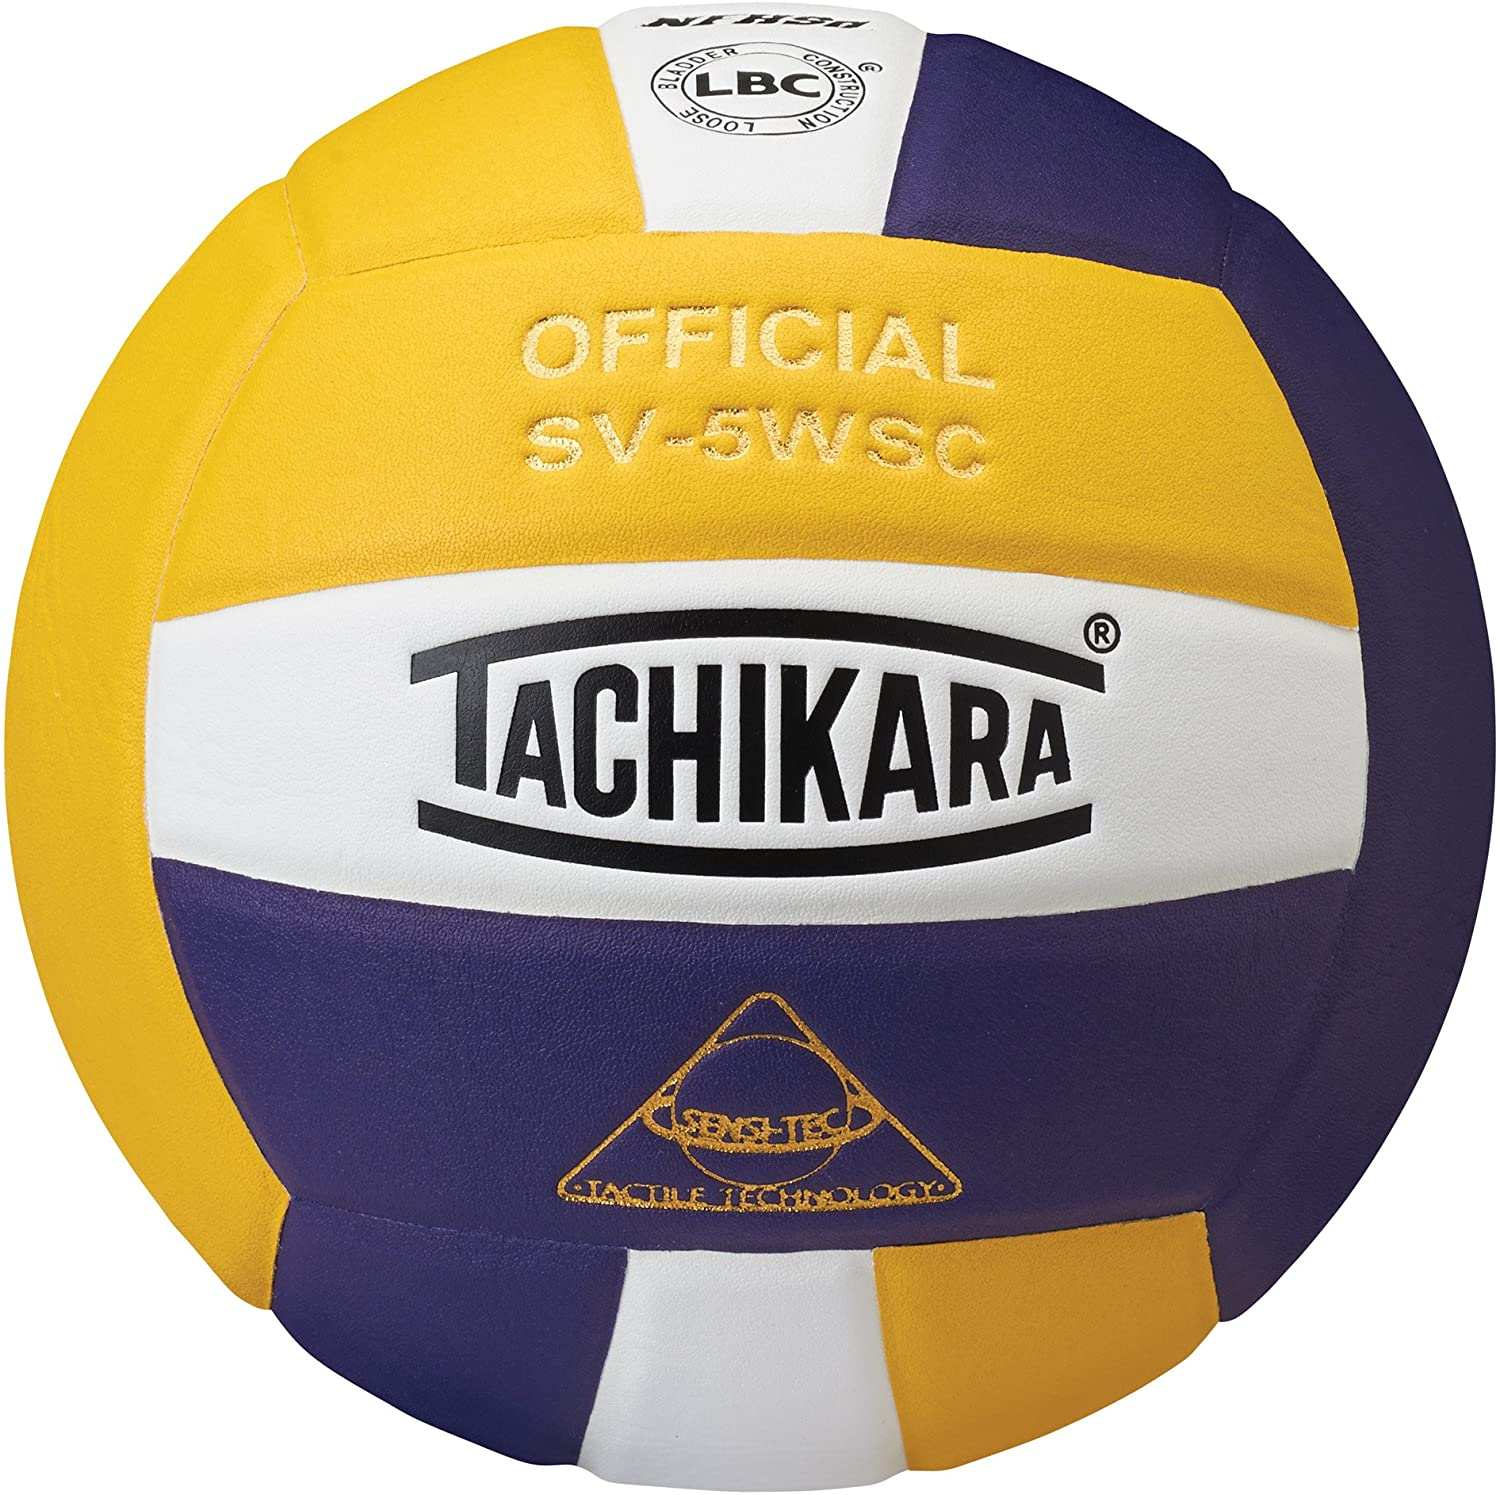 (紫の/白い/ゴールド) - Tachikara SV5WSC.GWP Sensi-Tec Composite High Performance Volleyball - ゴールド-白い-紫の